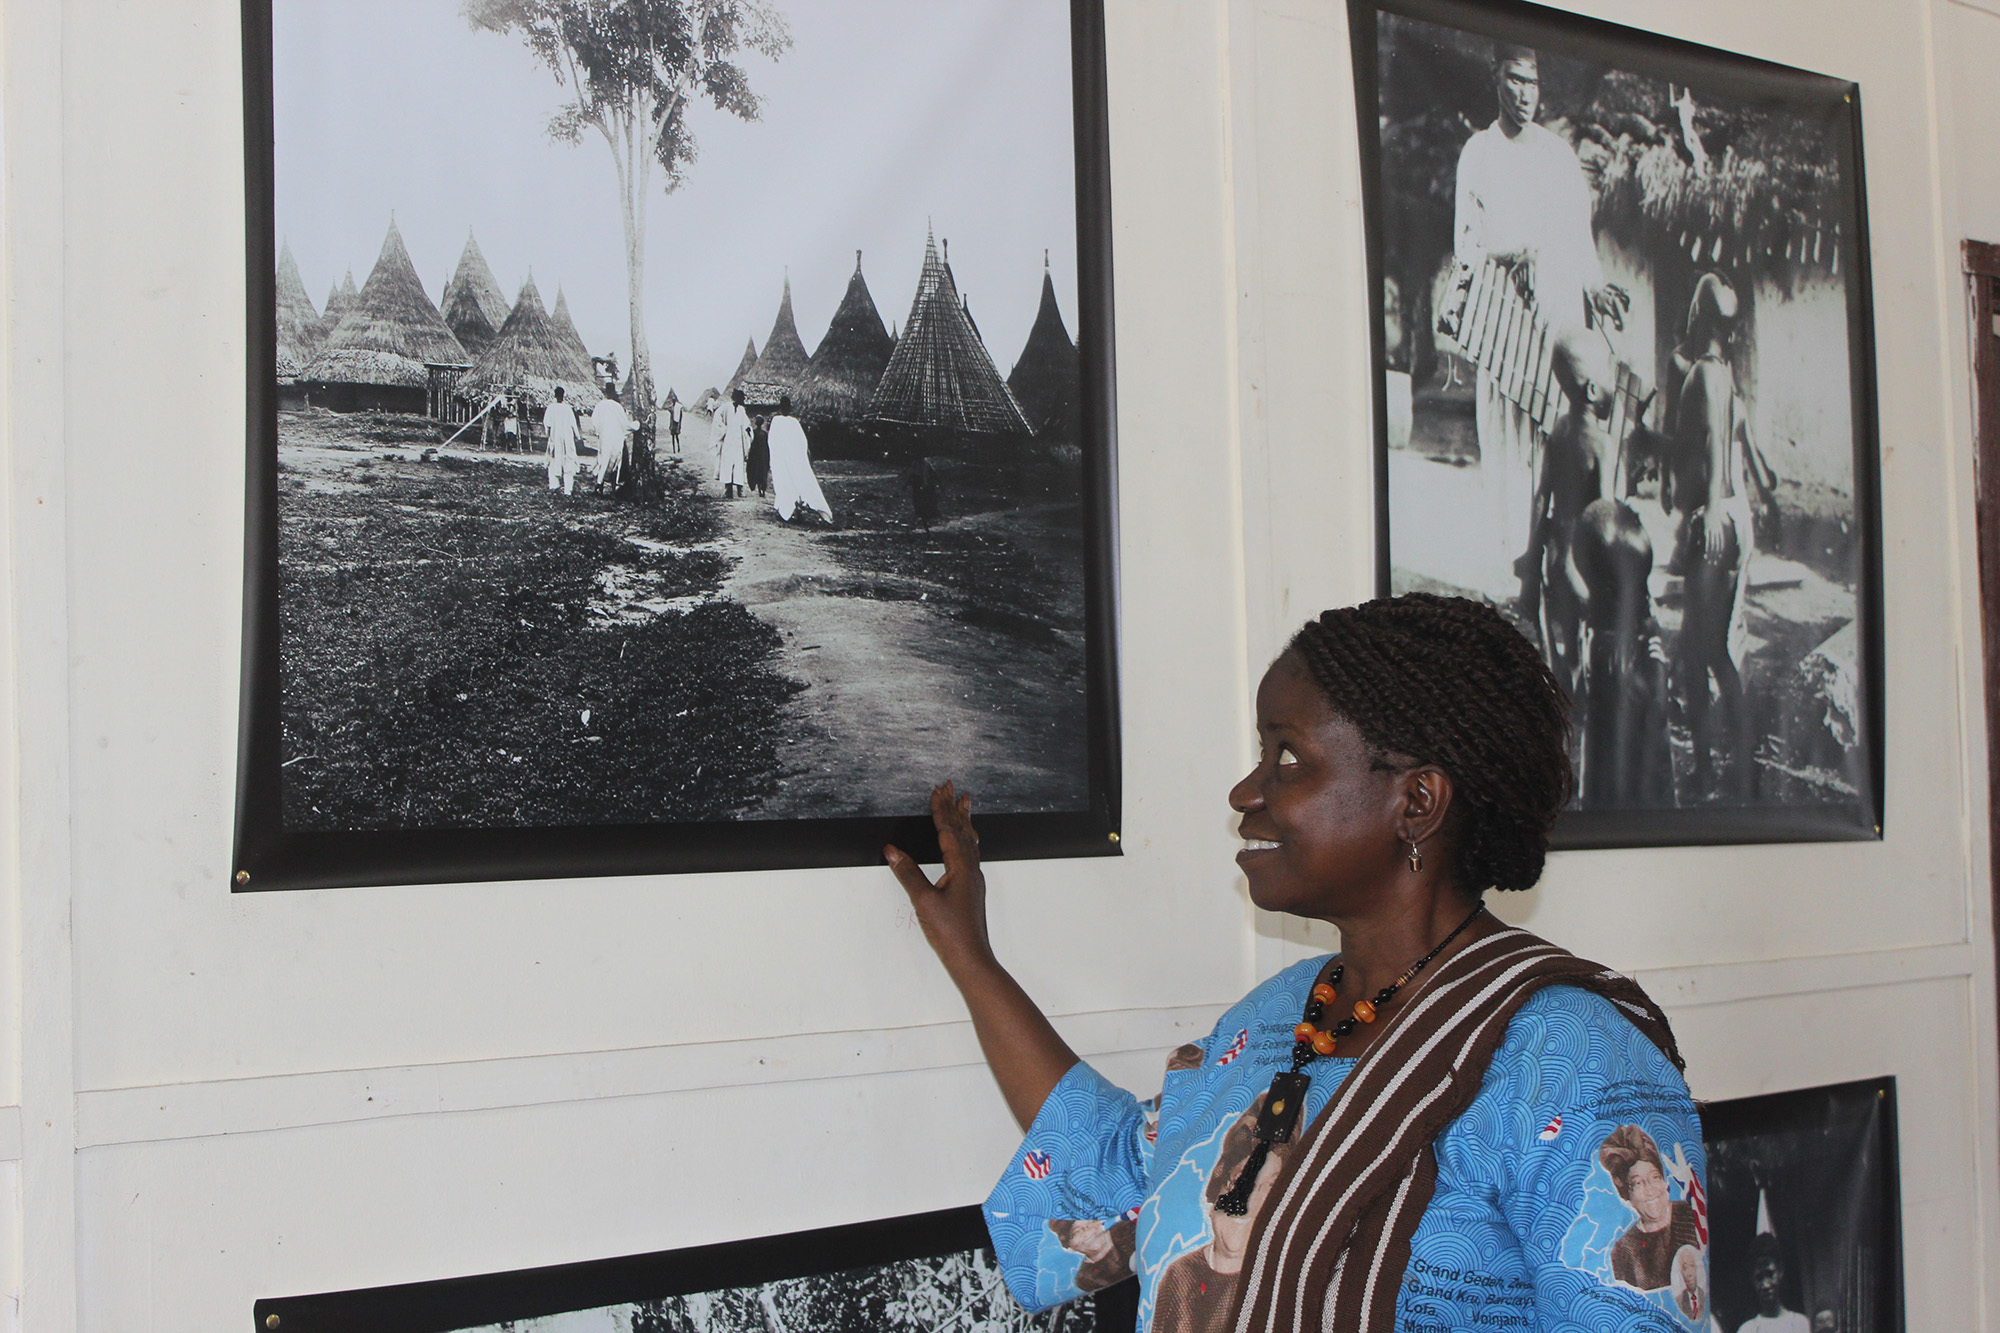 Ms. Louise McMillan Siaway, assistant Minister of Culture, with her favorite Paul Julien on display in the exhibition at the National Museum of Liberia. The exhibition was curated by Andrea Stultiens and opened by Ms. McMillan Siaway, 2014